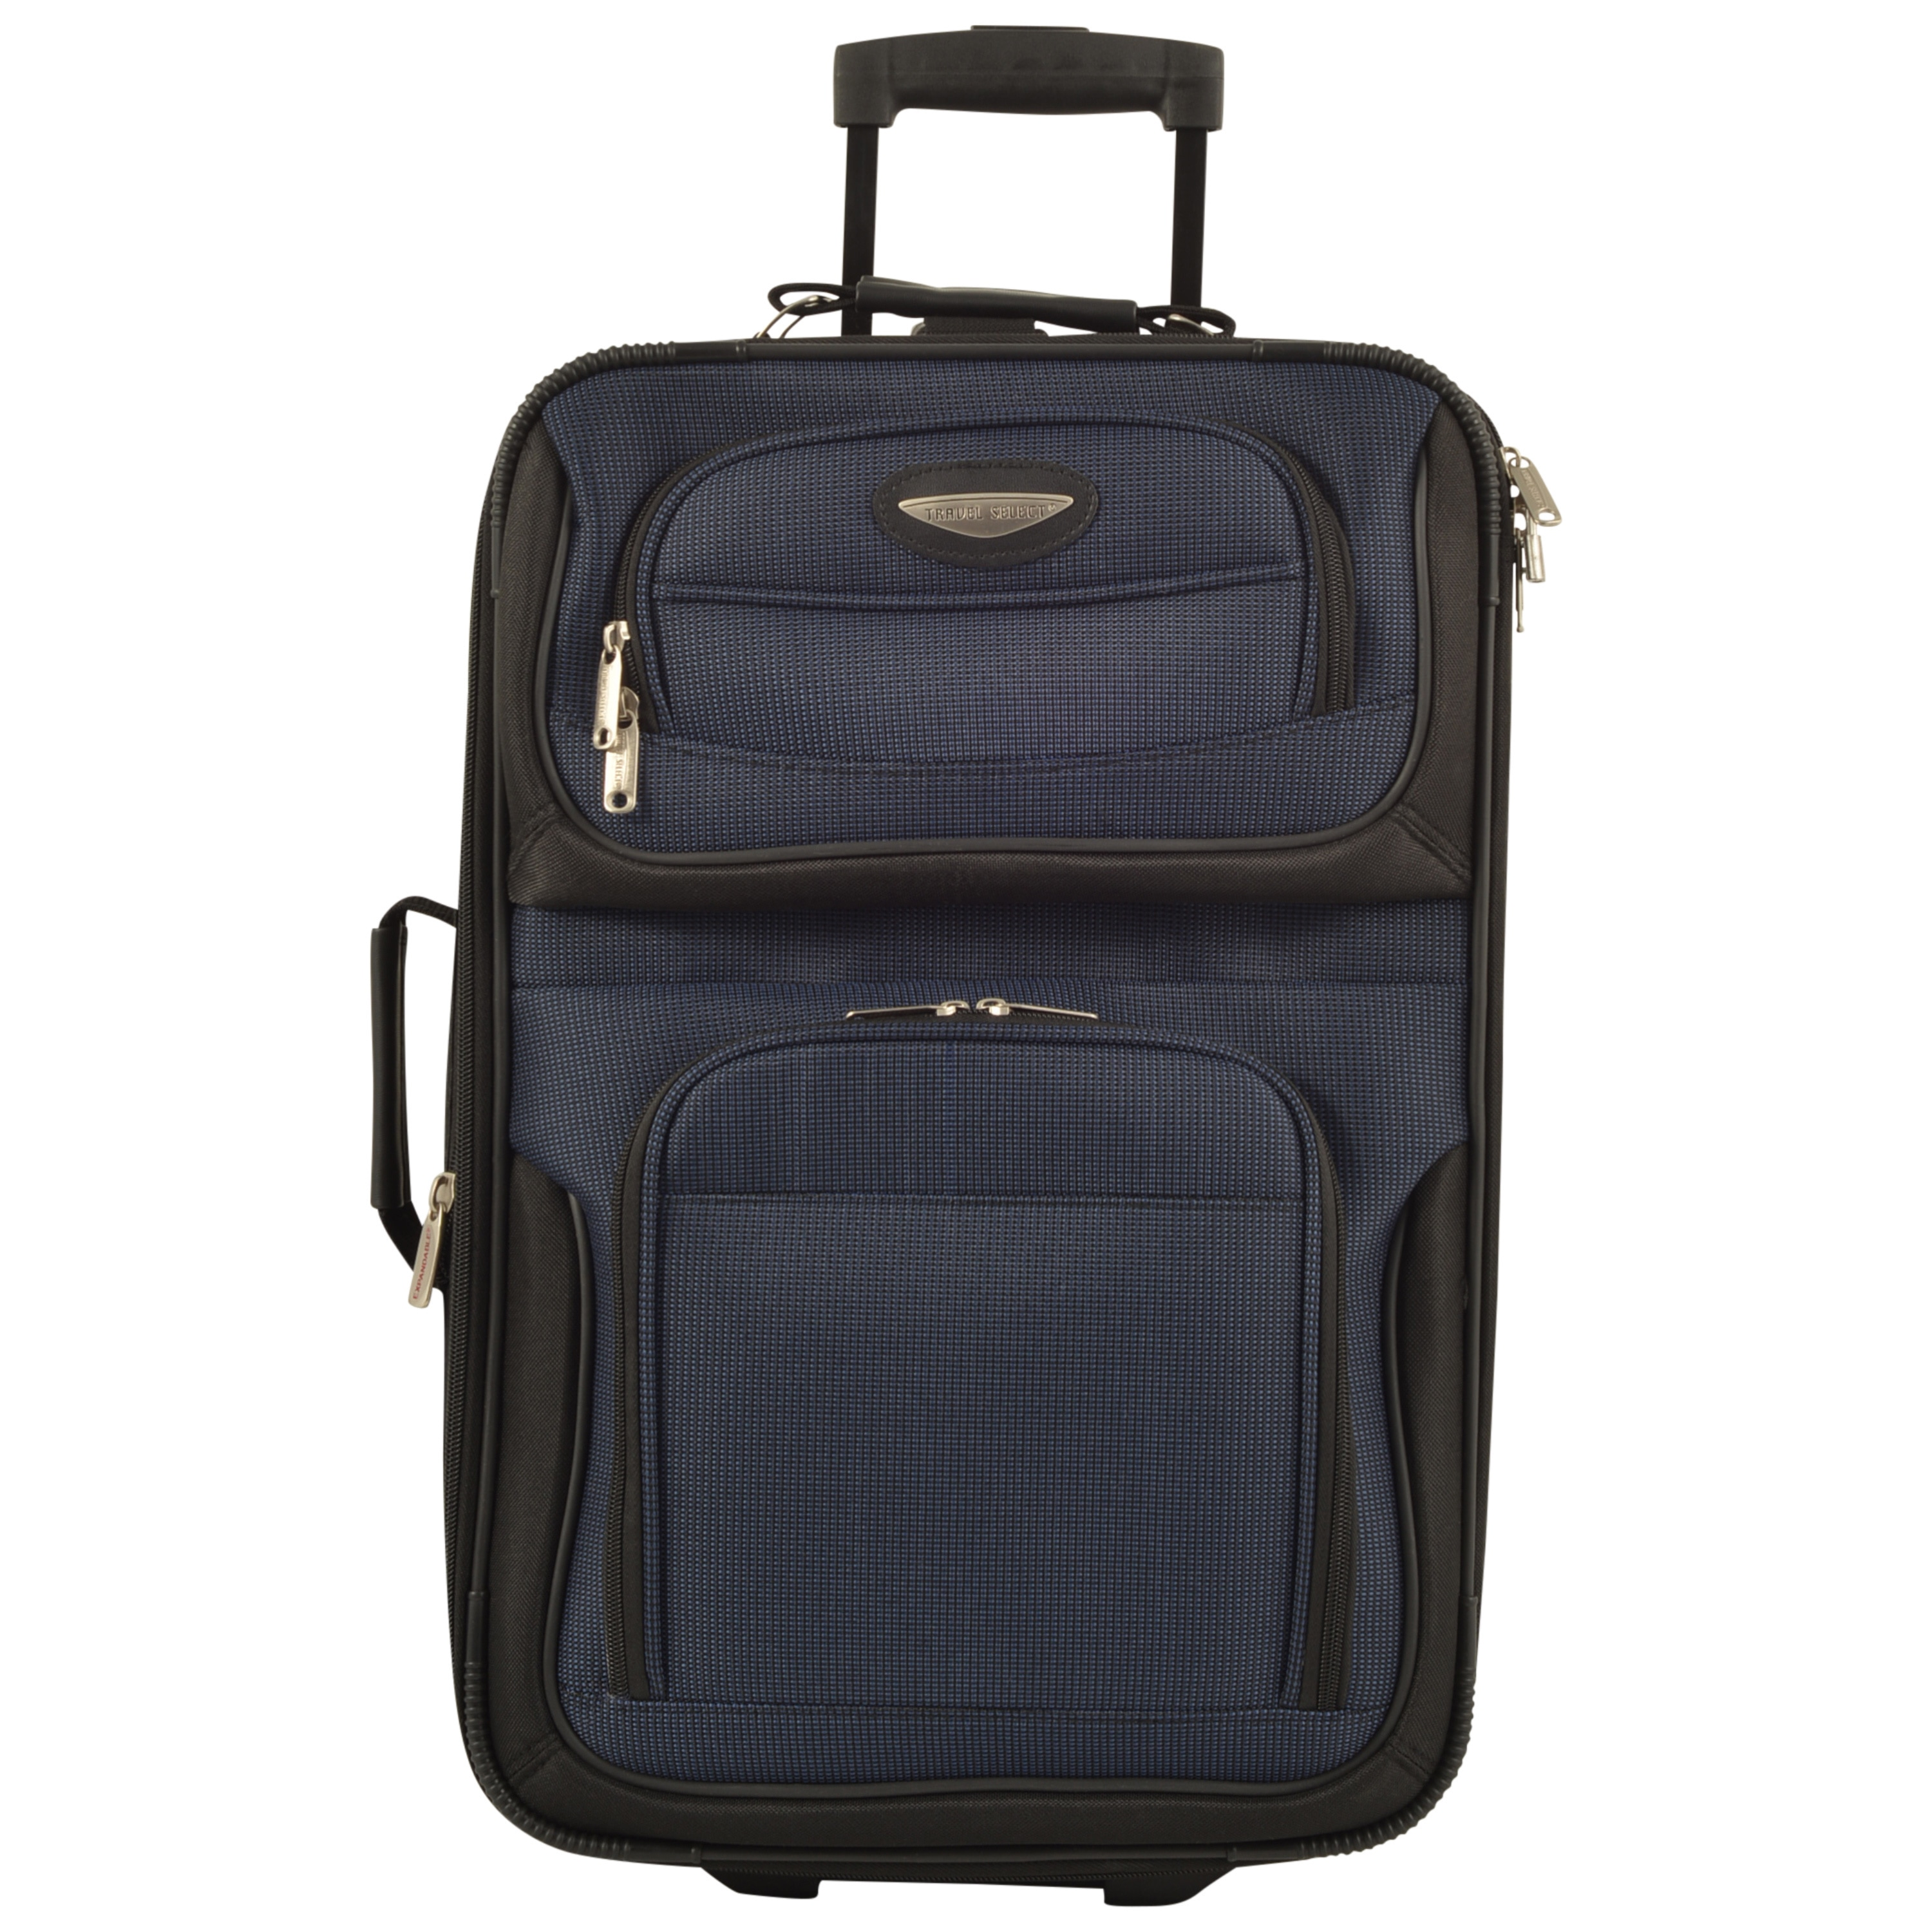 e00ec51e6f Travel Select by Traveler s Choice Amsterdam 21-inch Lightweight Carry On Upright  Suitcase